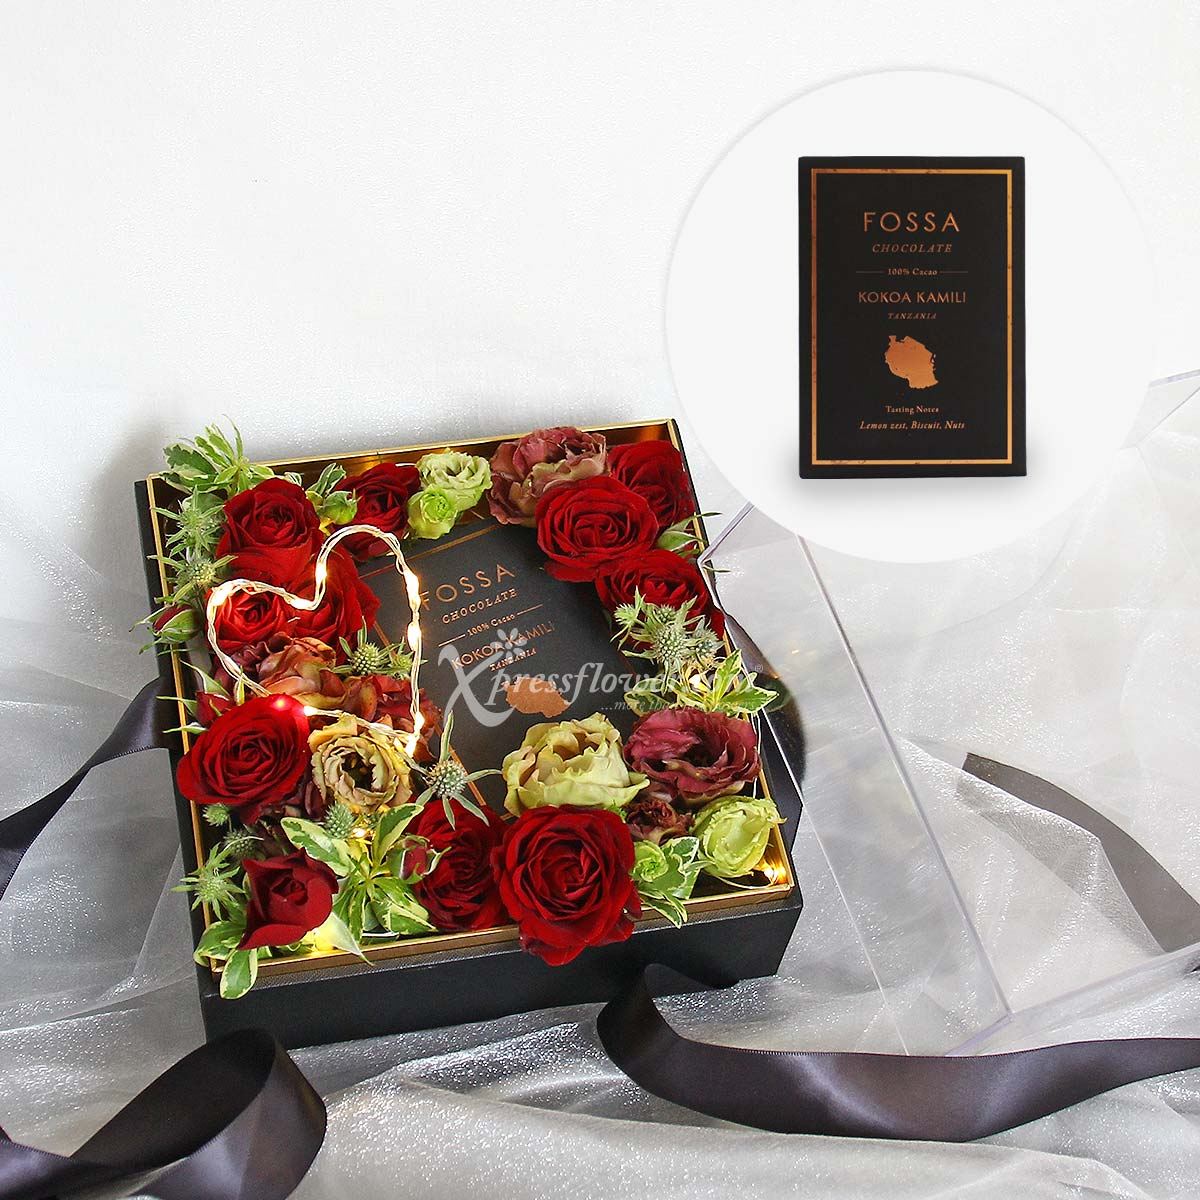 My Choco Heart (Red Rose Sprays with LED lights and Fossa chocolate)